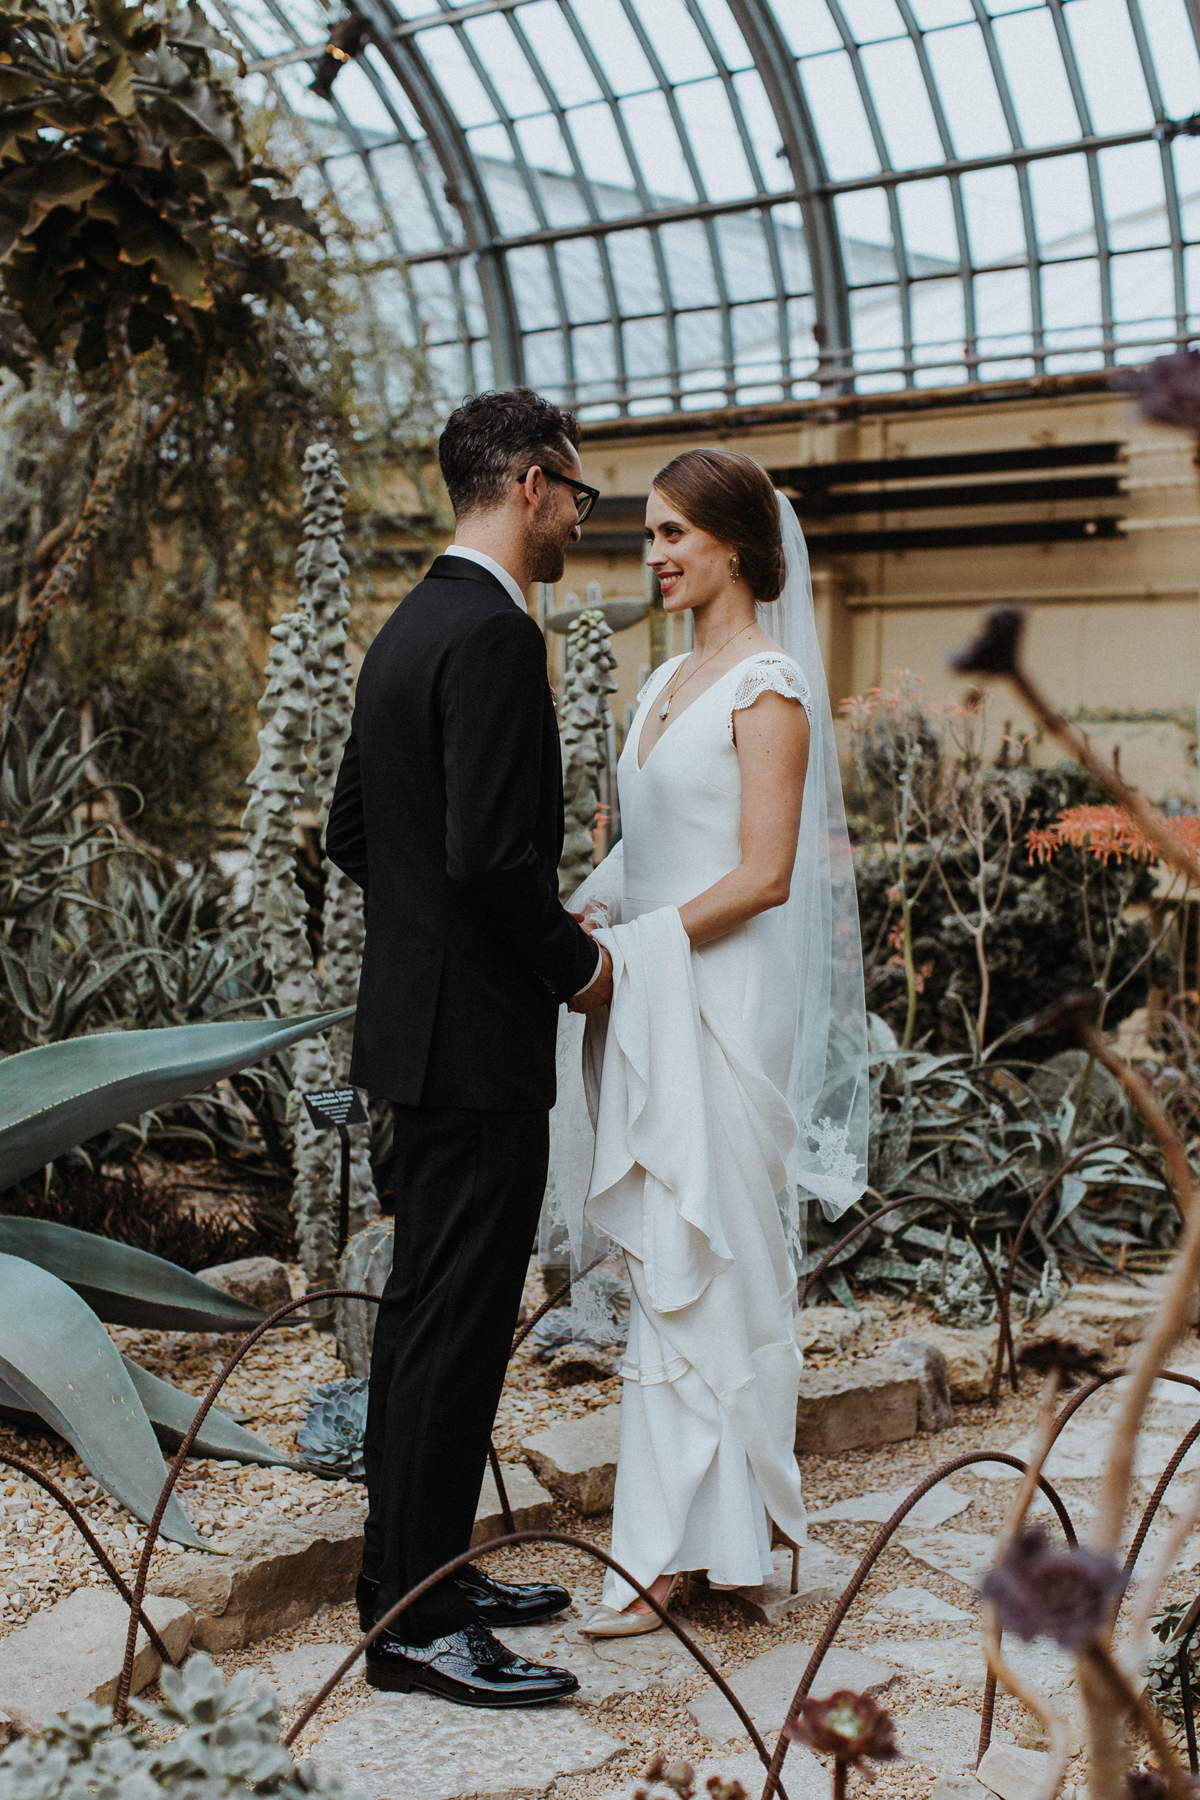 Garfield Park Conservatory Wedding, Chicago